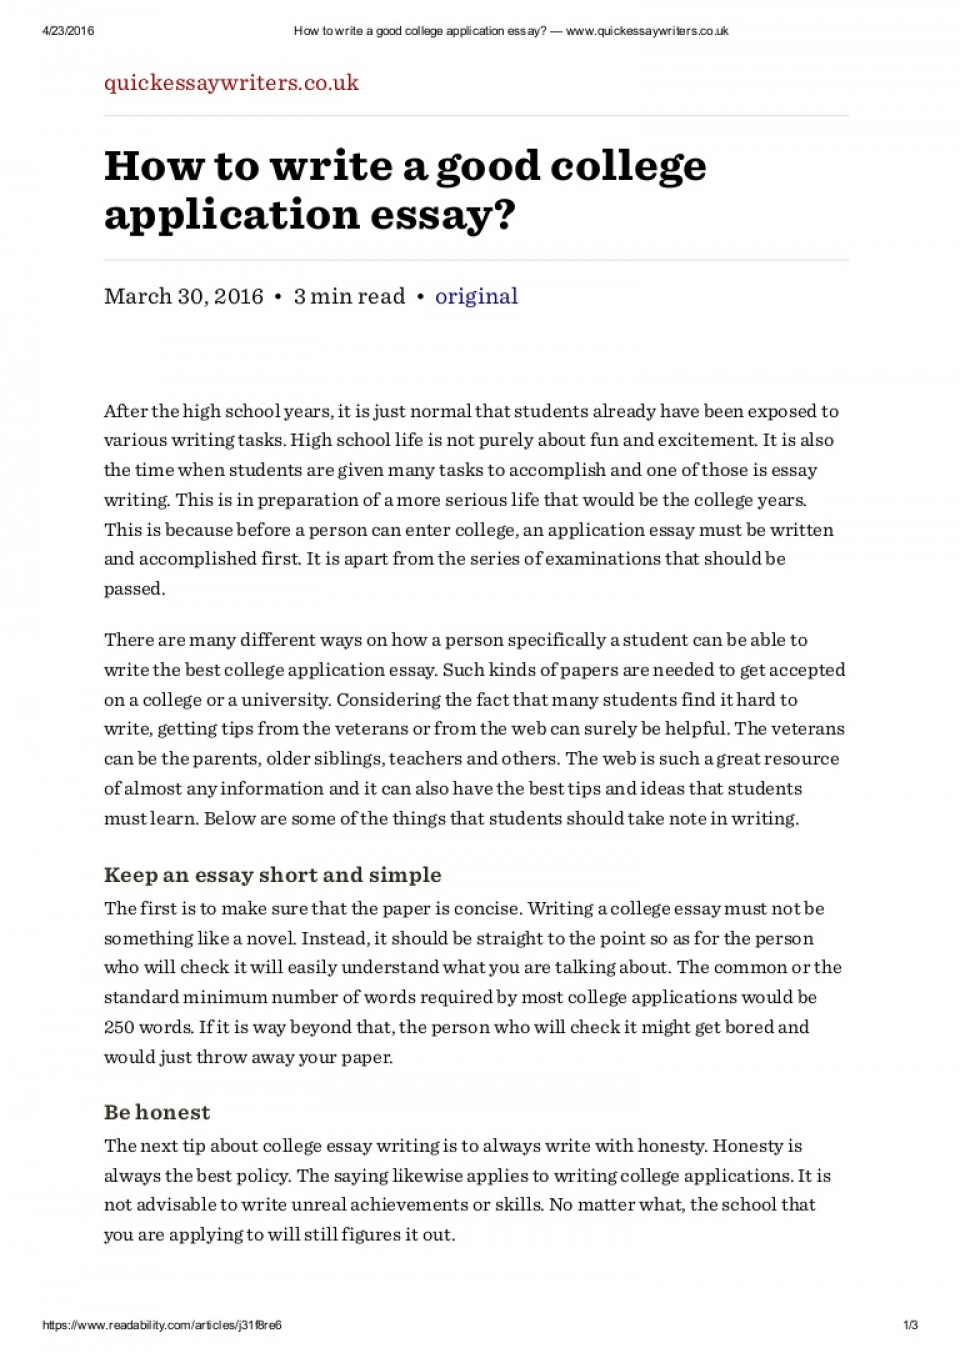 009 Howtowriteagoodcollegeapplicationessaywww Thumbnail Essay Example Writing College Rare A Application How To Write Outline Tips For Entrance 960